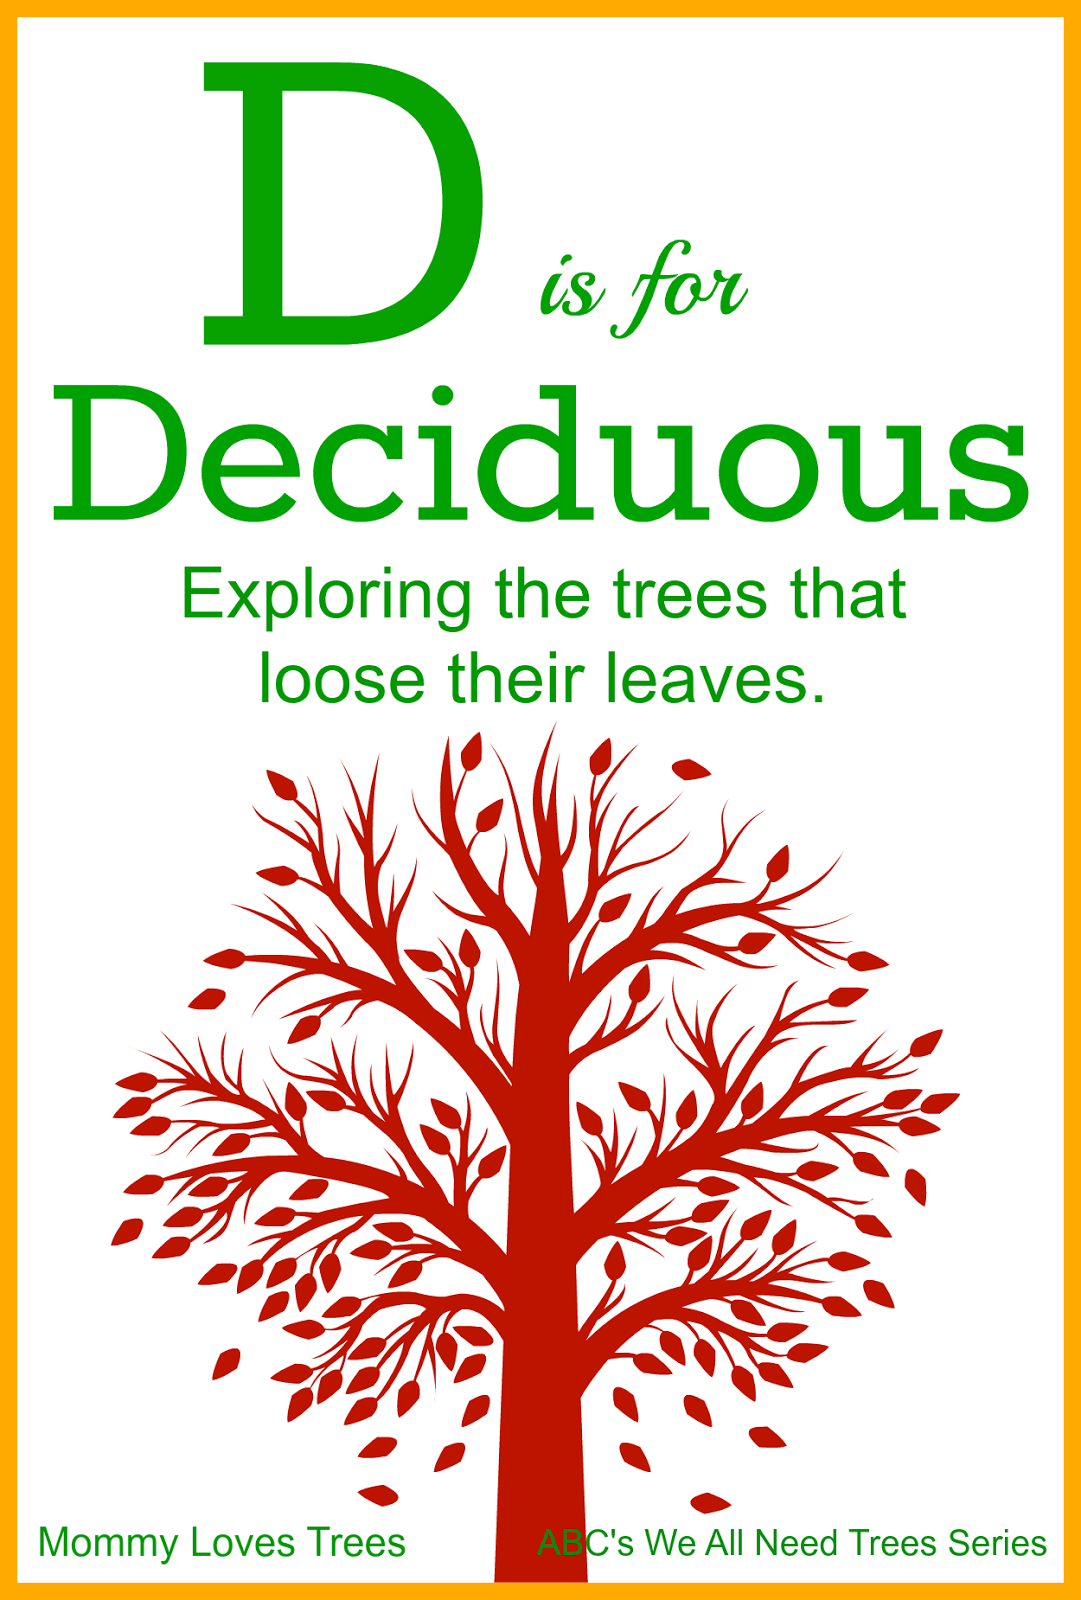 D is for Deciduous - Exploring the trees that loose their leaves!